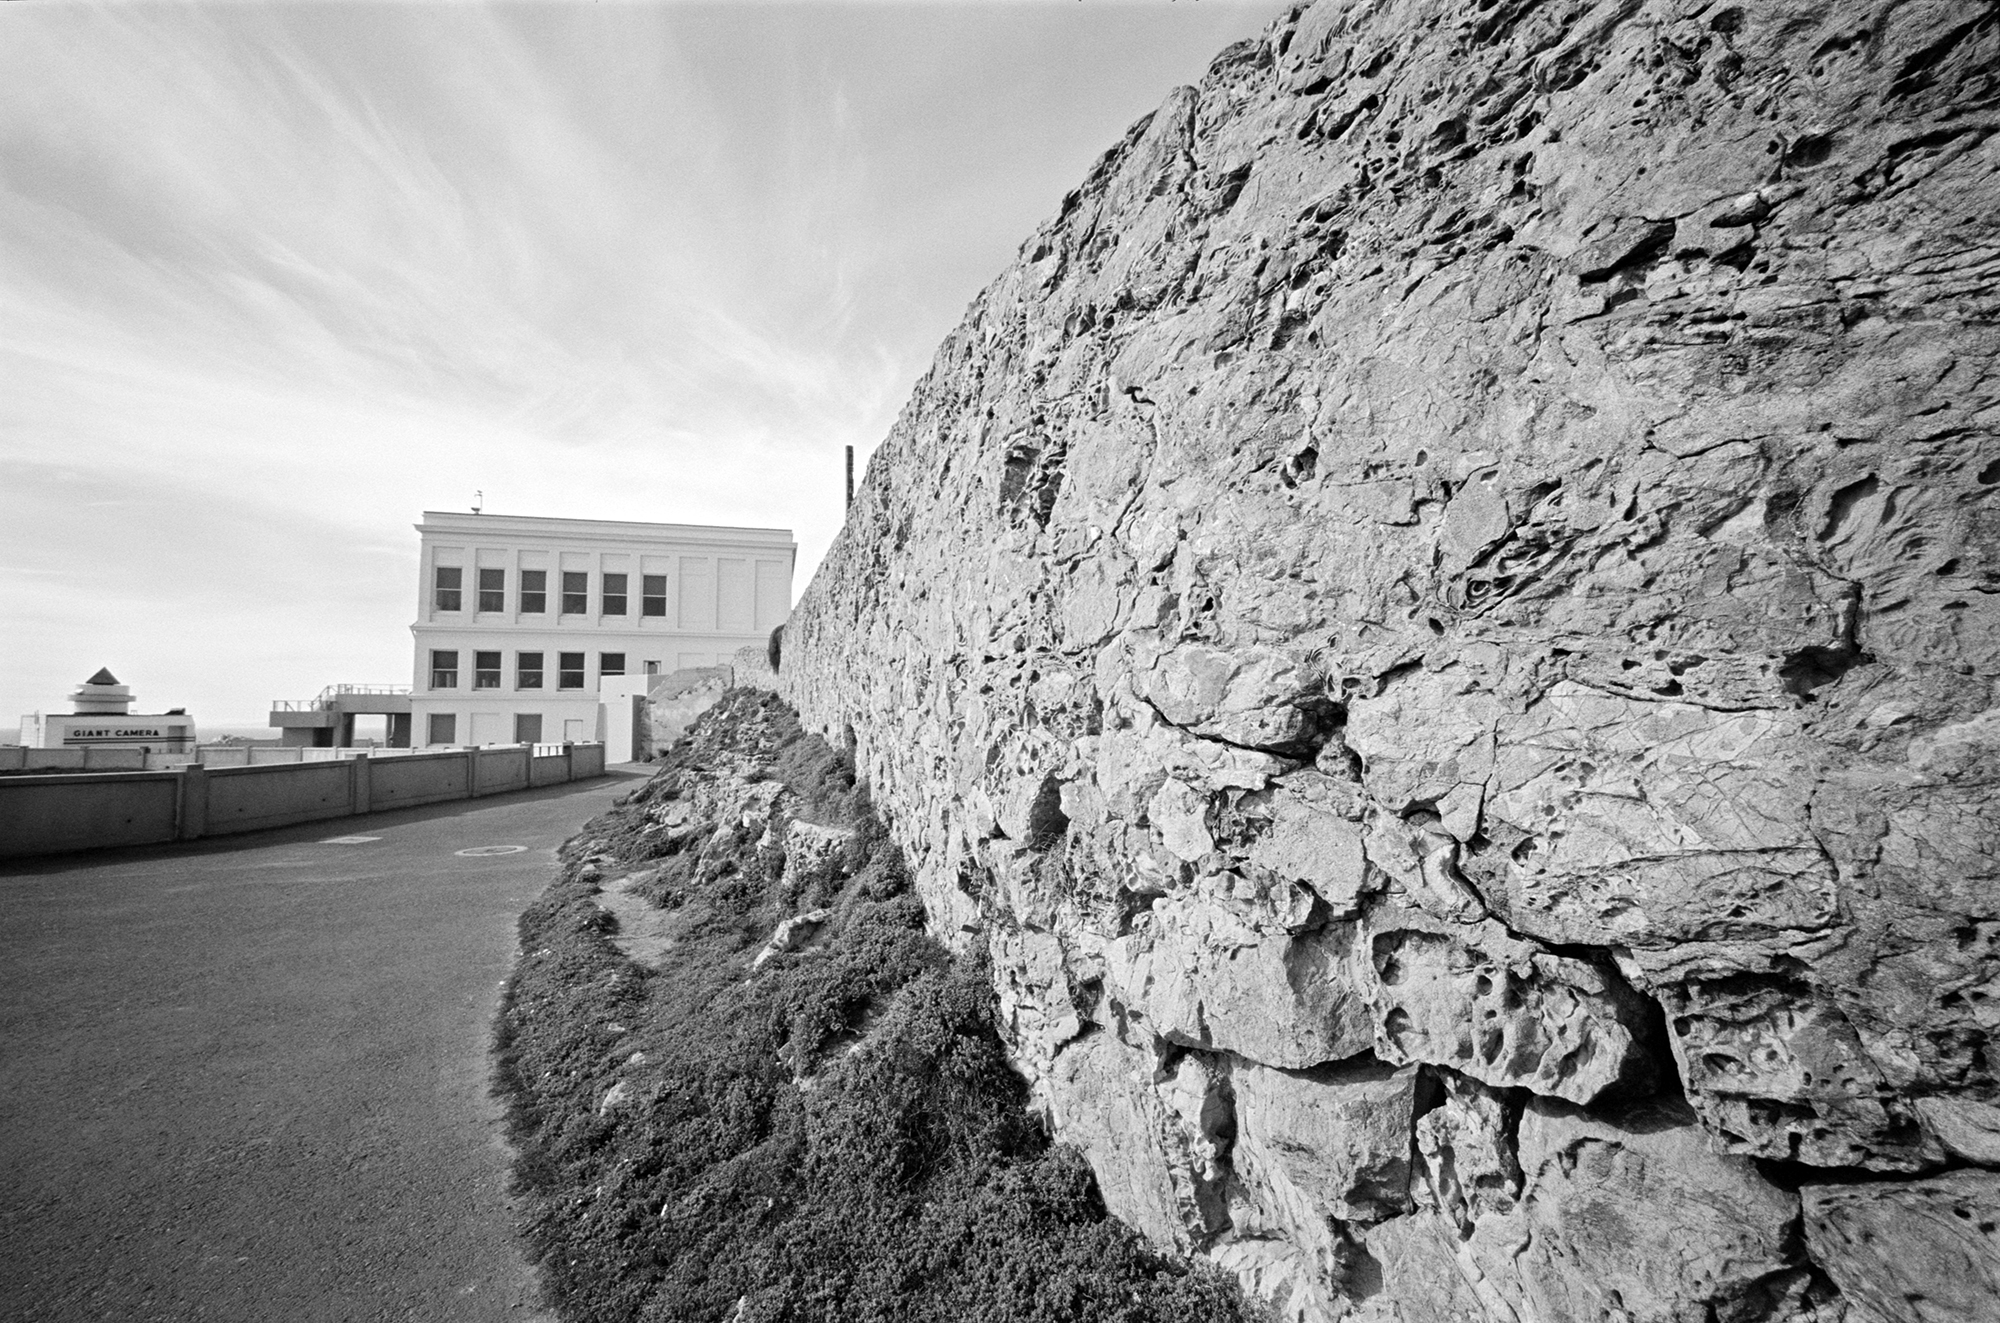 View of the Cliff House in San Francisco taken with a Leica M3 and Voigtlander 15mm lens.